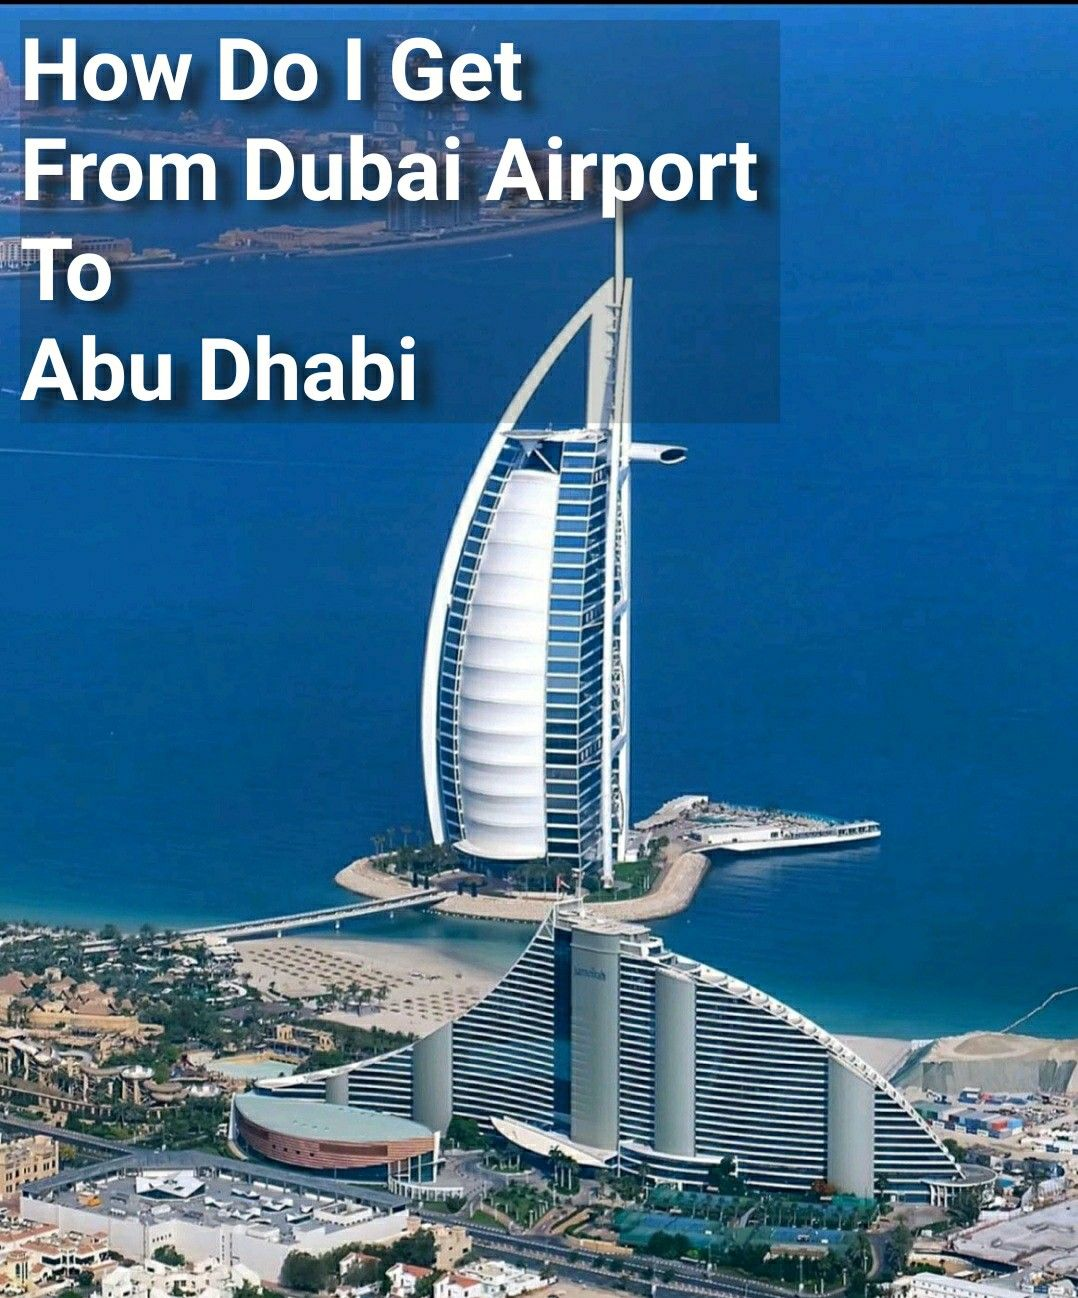 c5849a4604b4cfef22b8bcd5308924bc - How To Get From Dubai Airport To The Palm